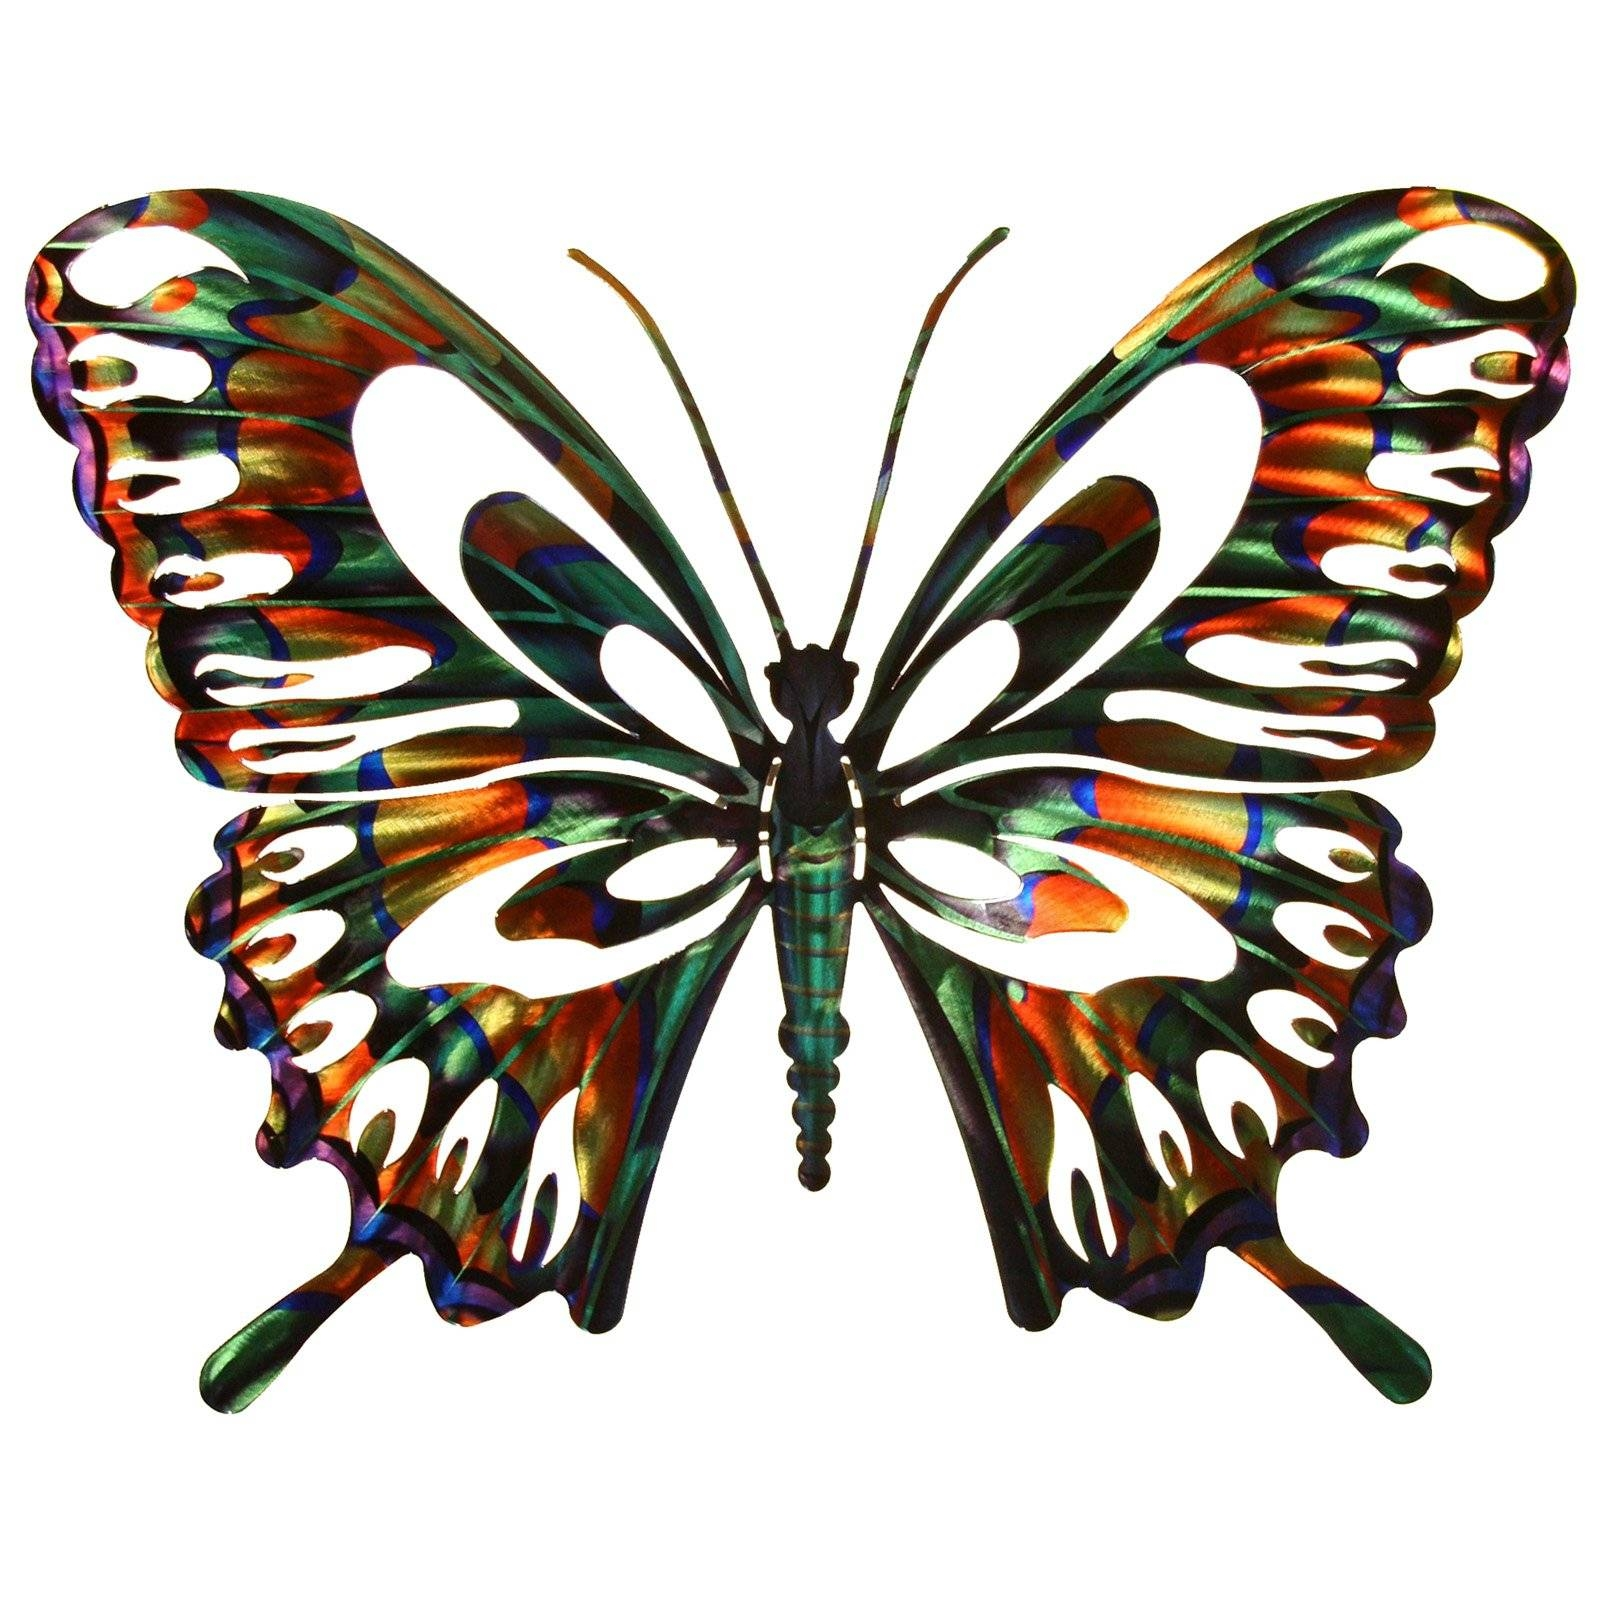 3d Butterfly Metal Outdoor Wall Art | Hayneedle With Most Recently Released Large Metal Butterfly Wall Art (View 5 of 25)